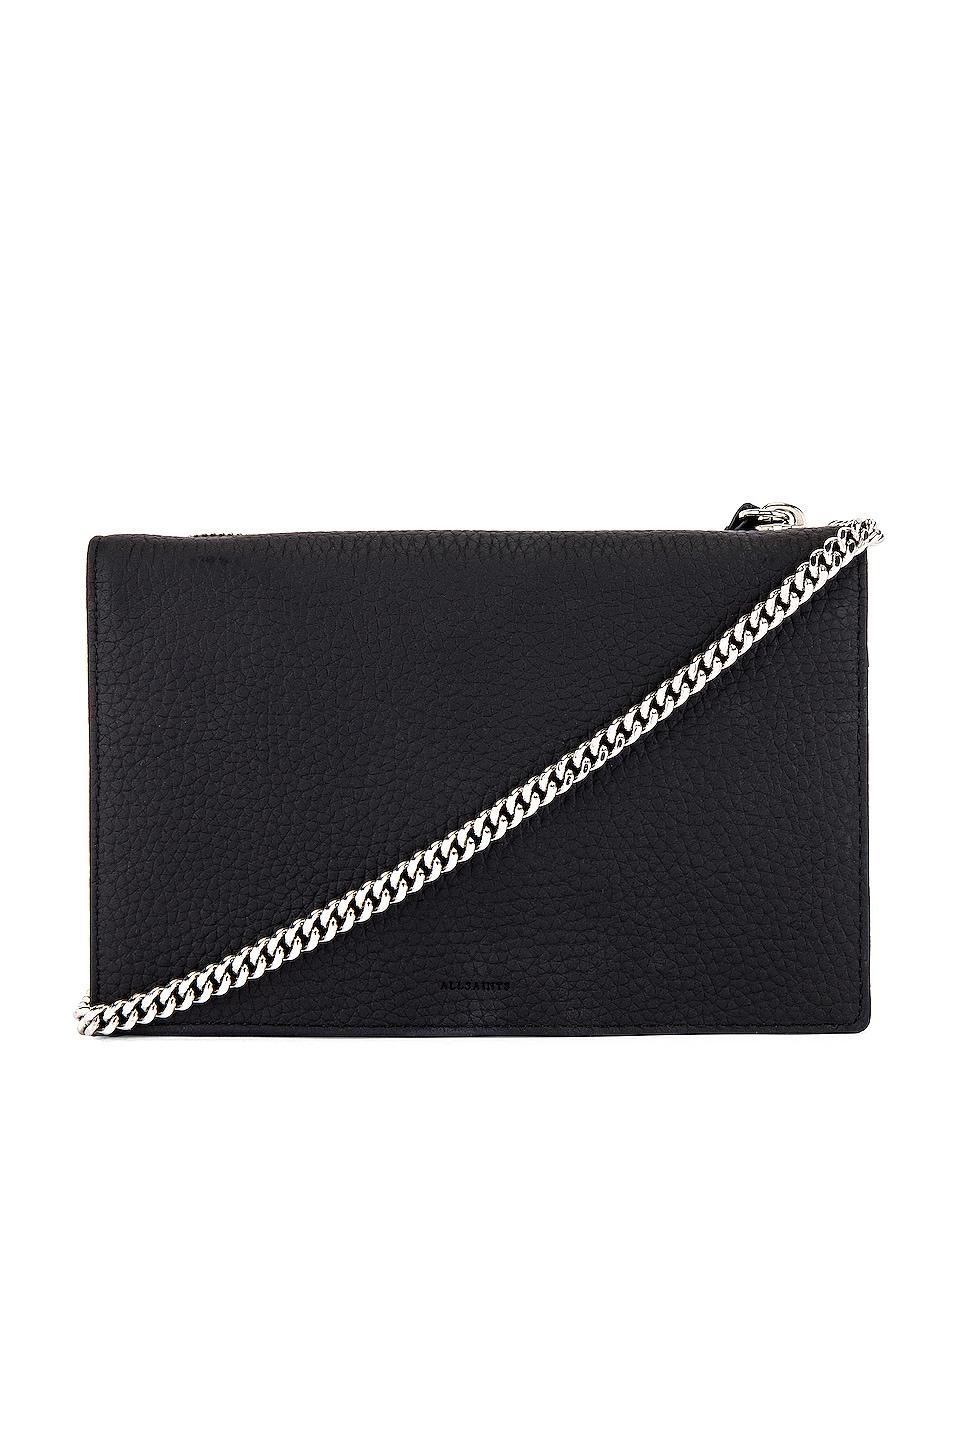 ALLSAINTS Fetch Chain Crossbody in Black